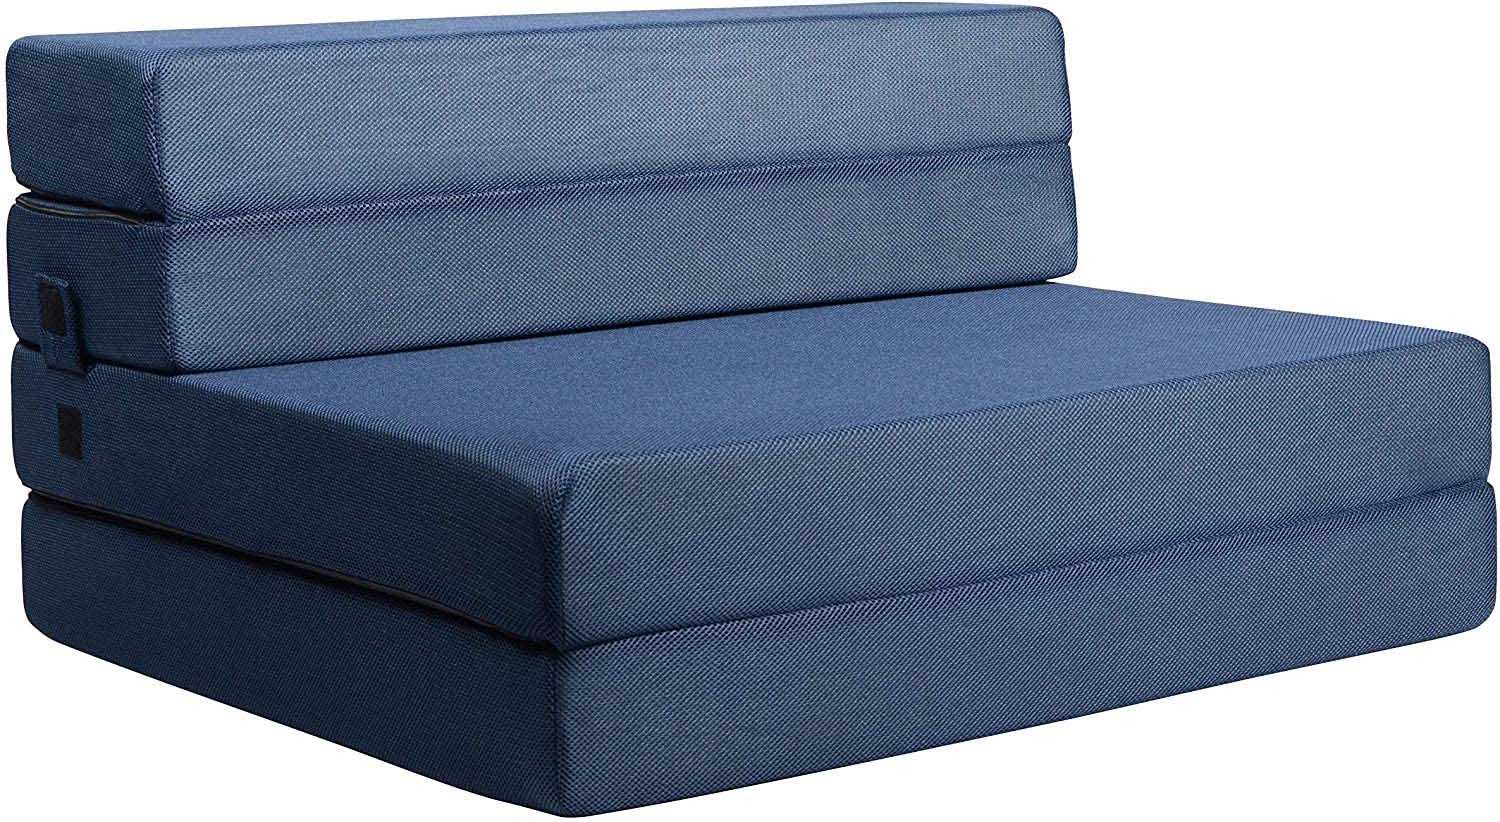 Milliard Tri Fold Foam Folding Mattress and Sofa Bed for Guests